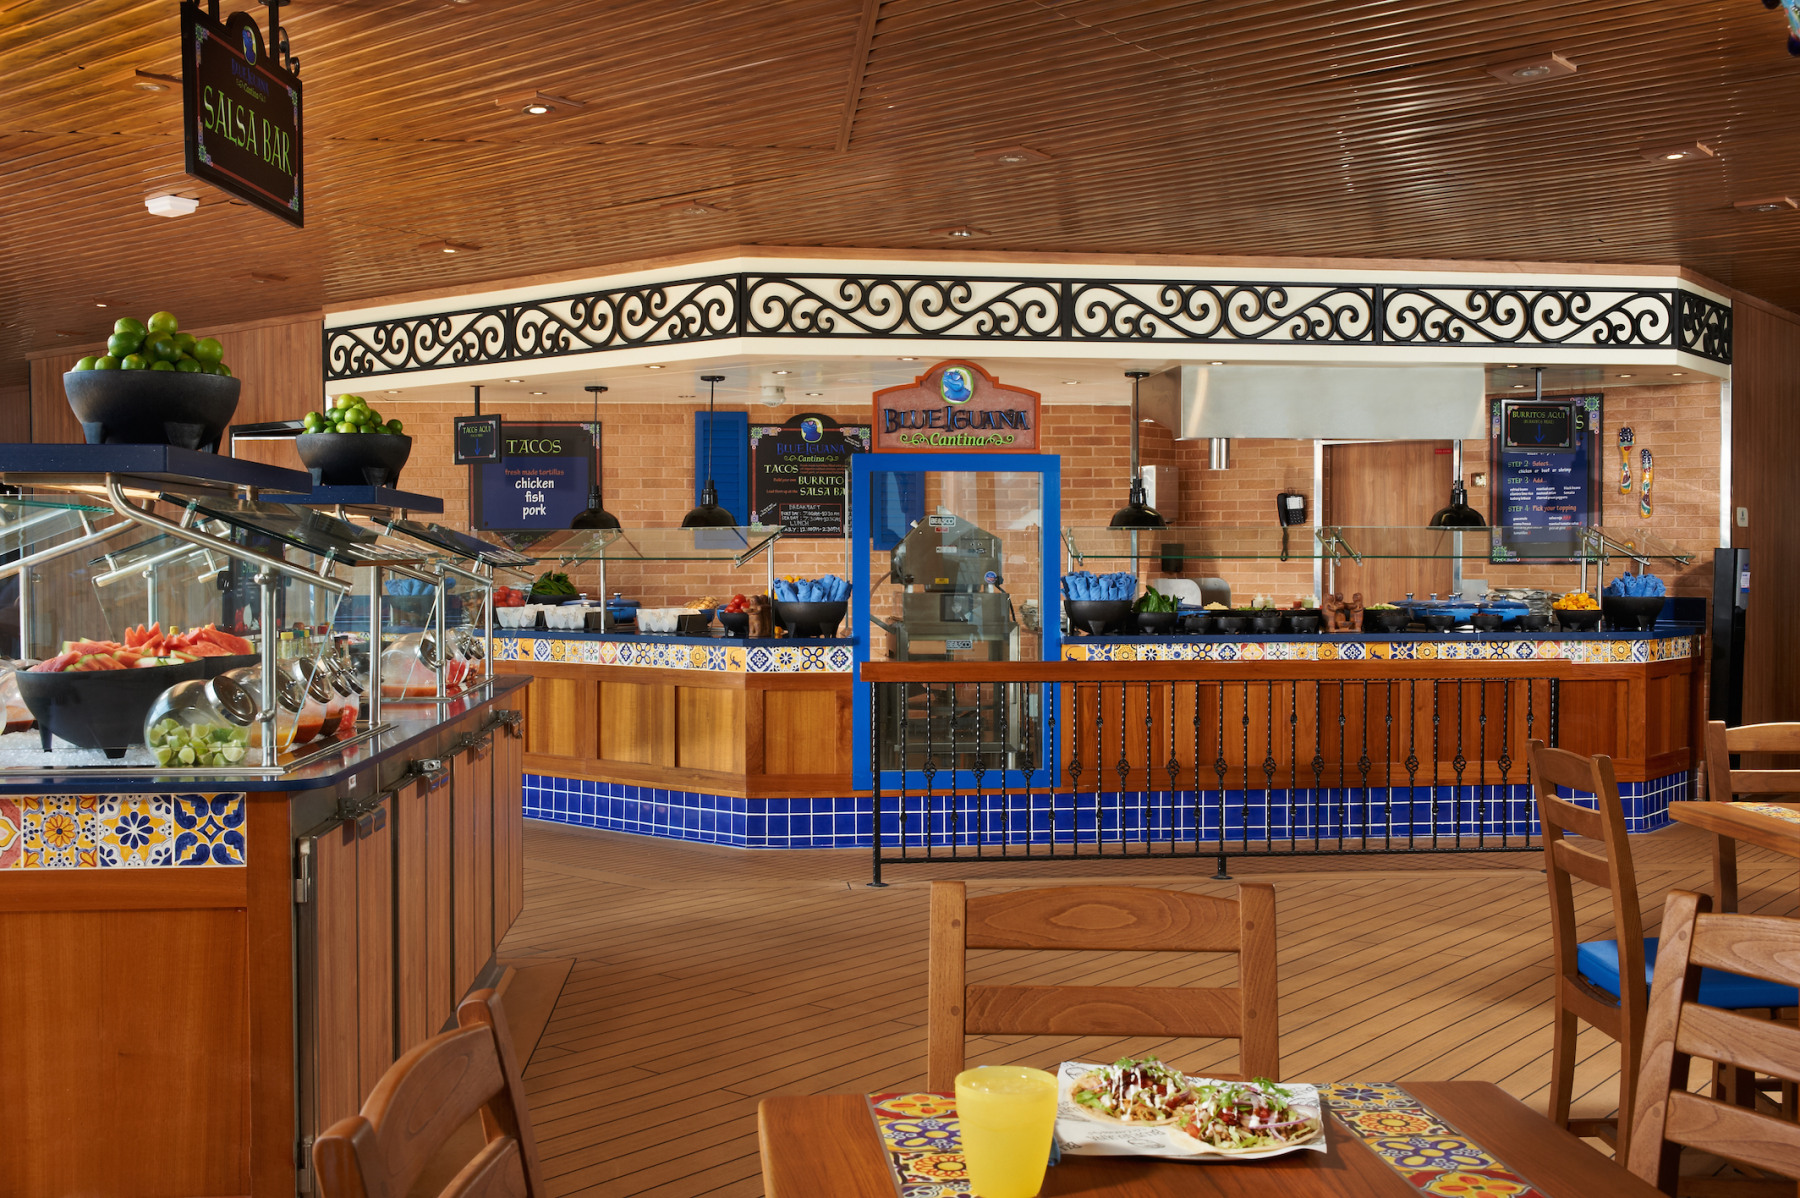 Carnival Cruise Lines Carnival Dream Interior BlueIguana Cantina 1.jpg